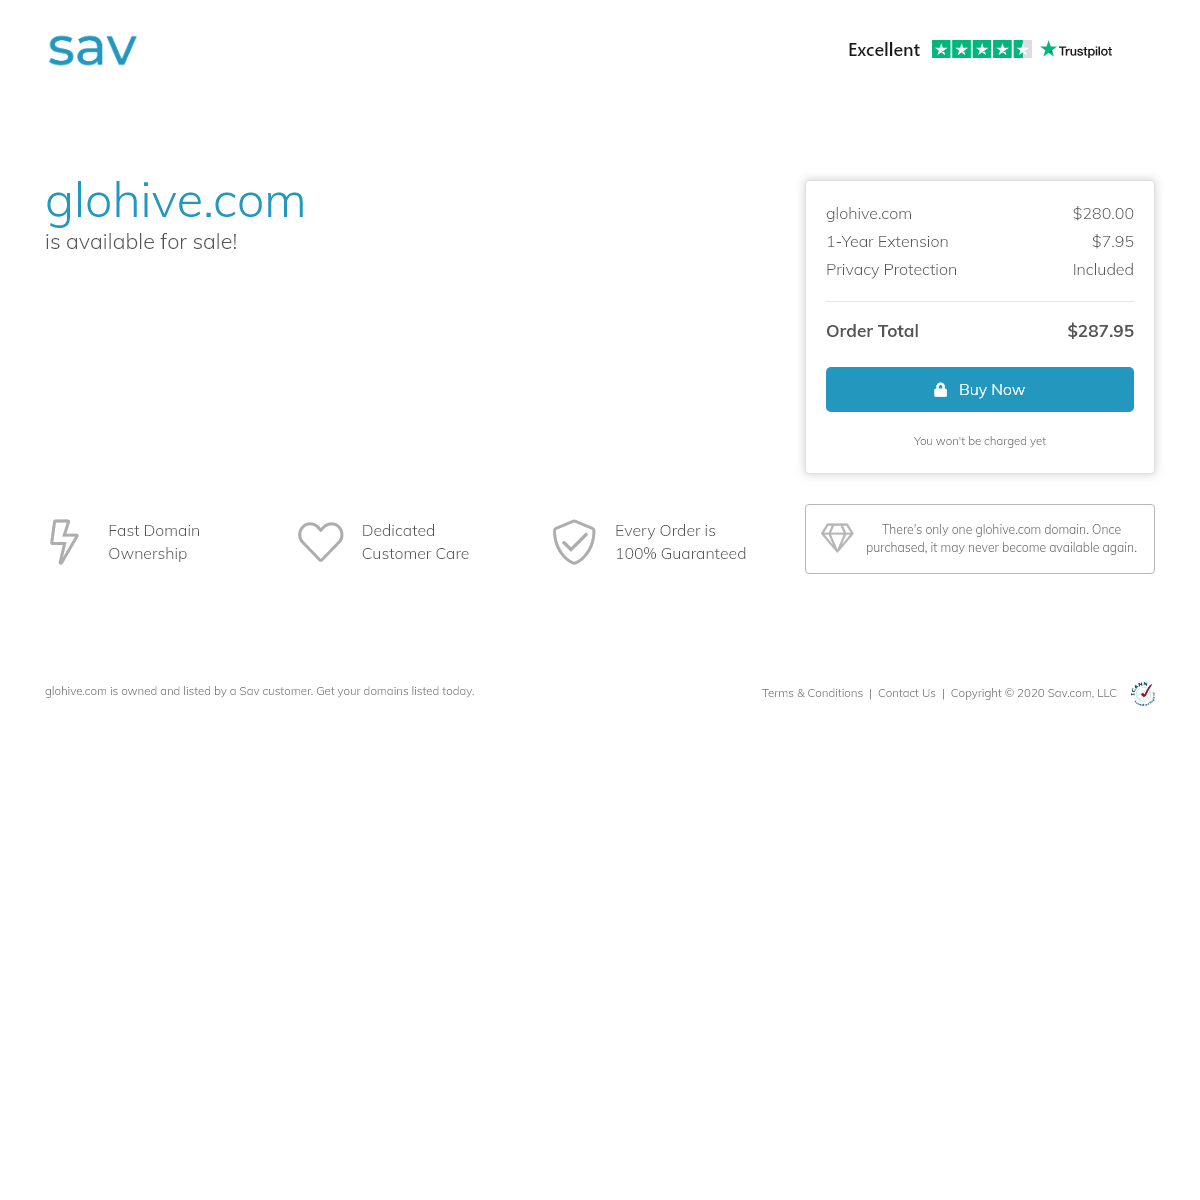 glohive.com Is for Sale